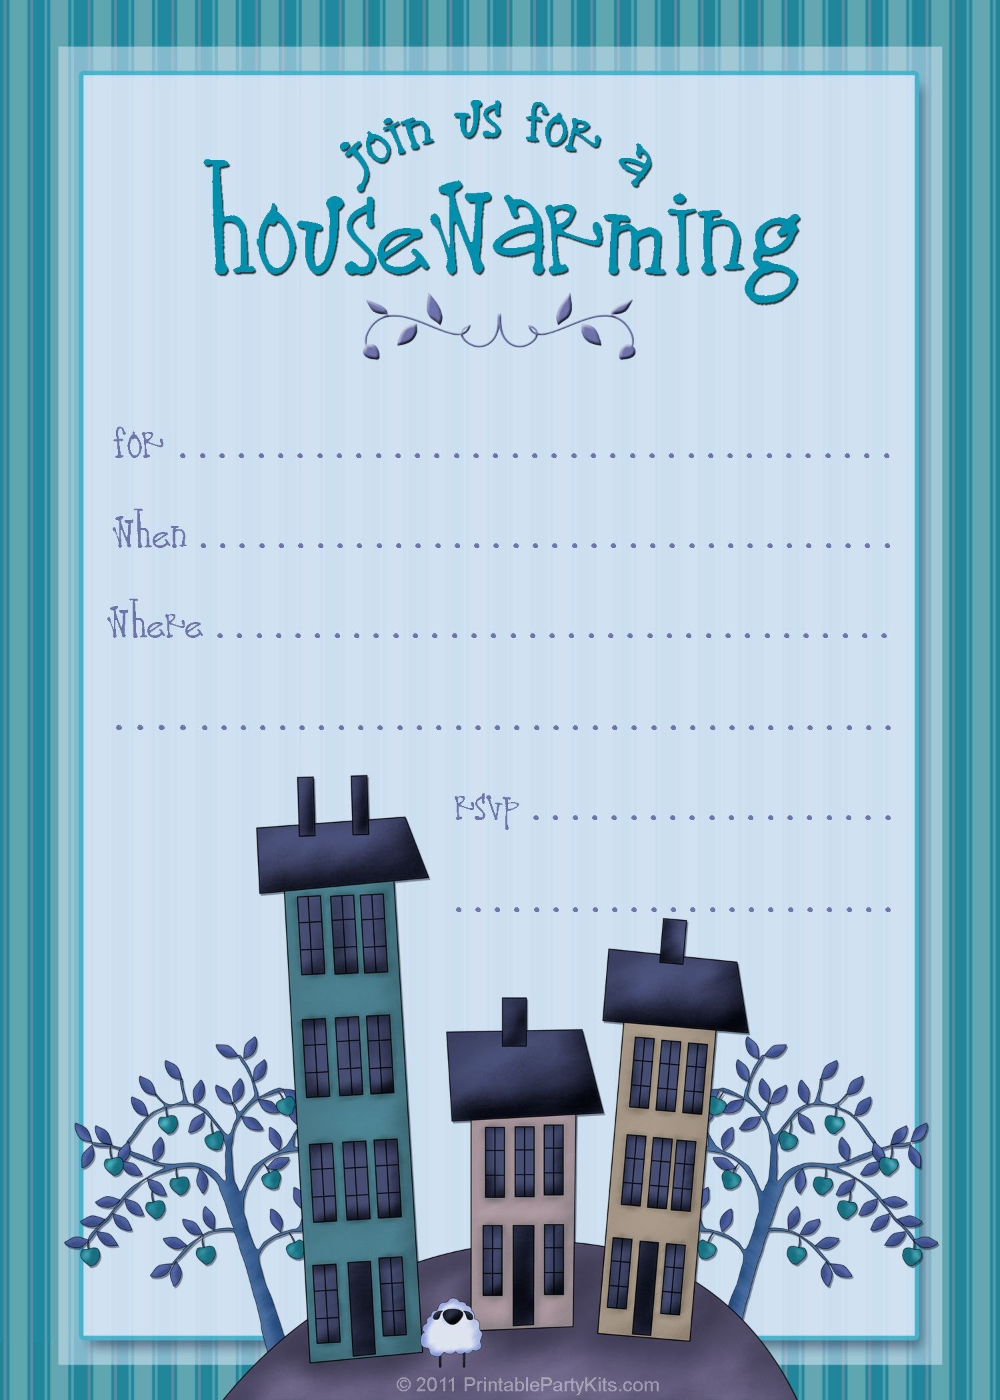 Free Housewarming Invitation Templates Template Awesome Ideas For Fr Housewarming Party Invitations Housewarming Invitation Templates House Warming Invitations